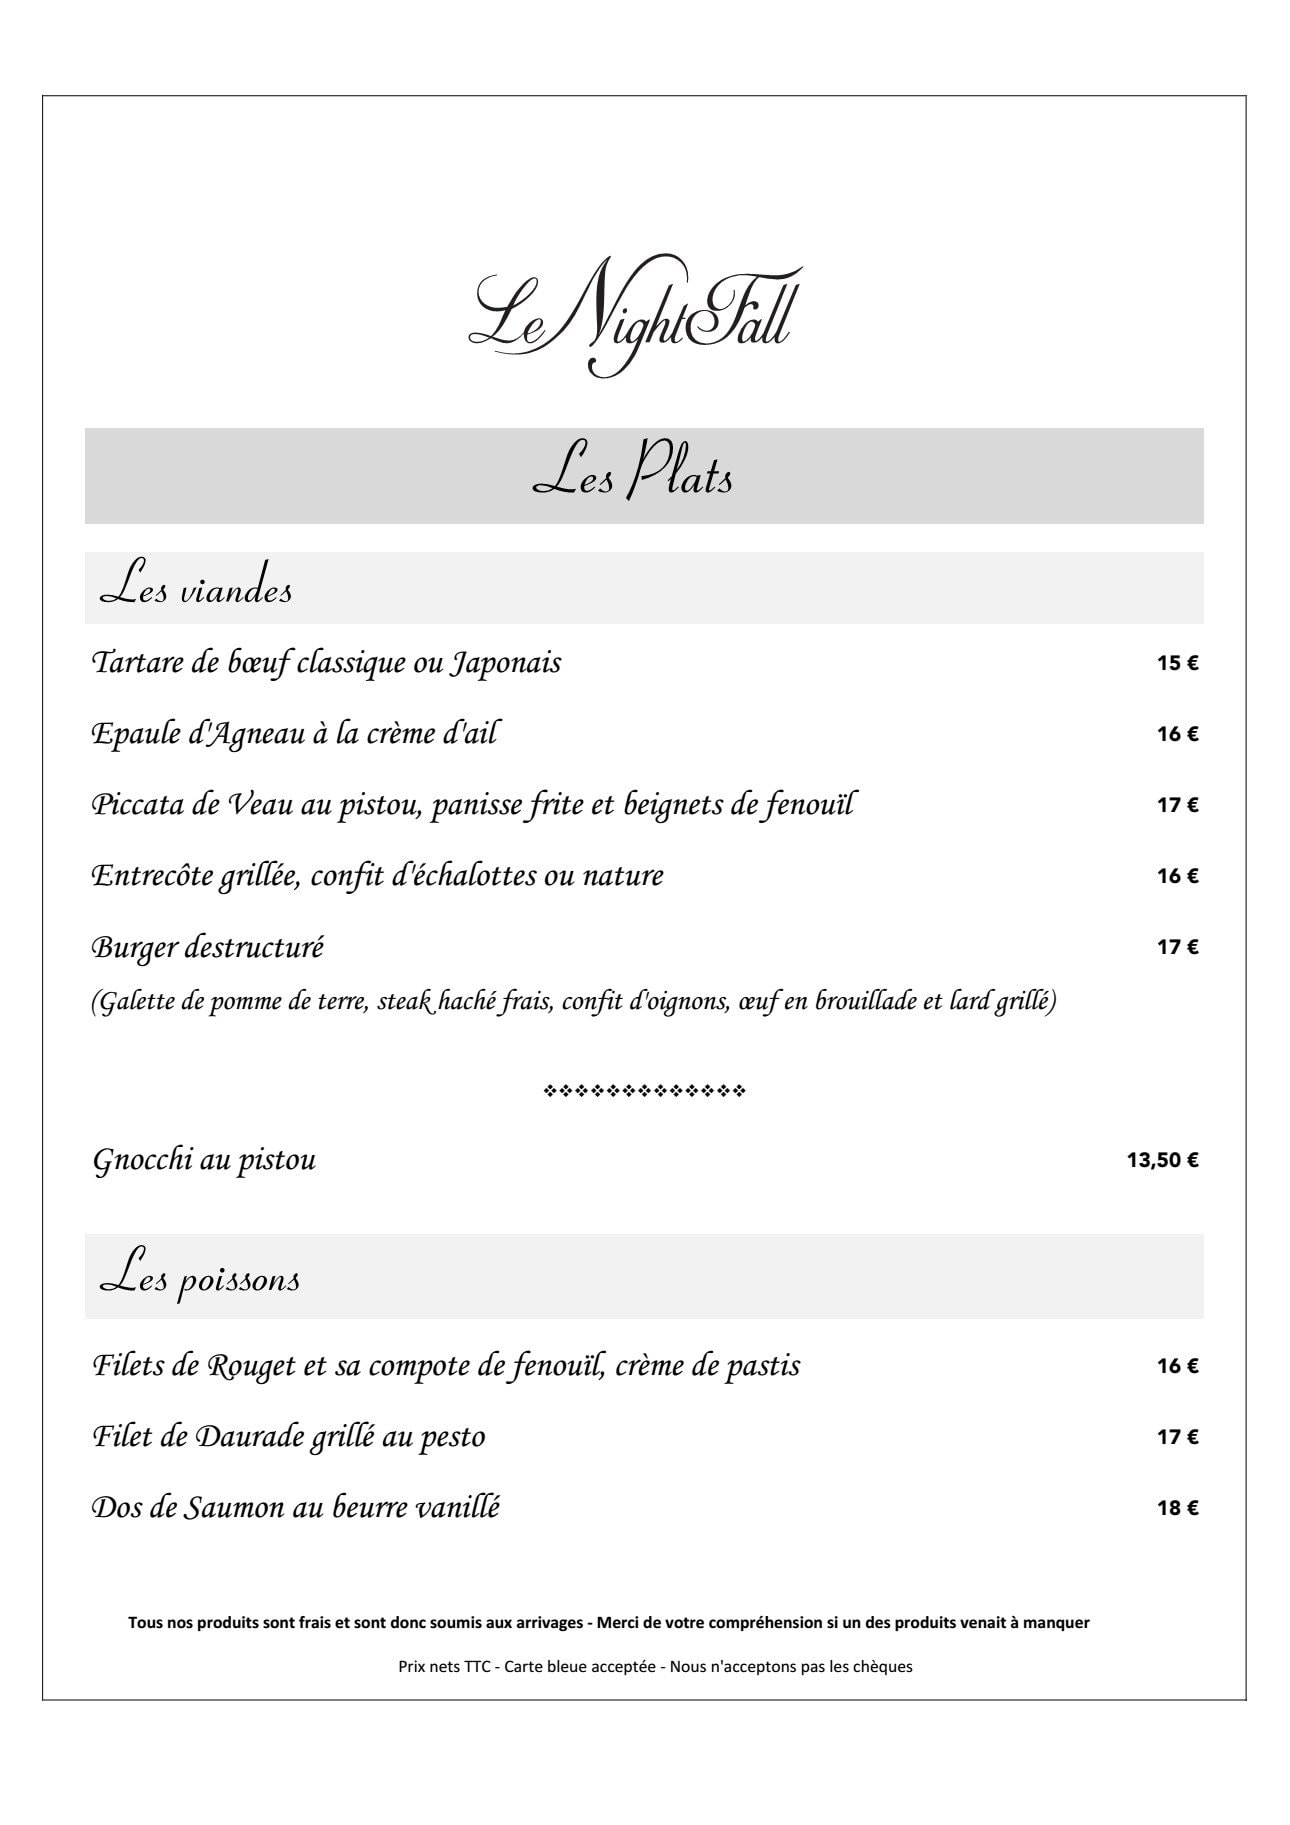 Le NightFall   Saint Maximin La Sainte Baume carte menu et photos